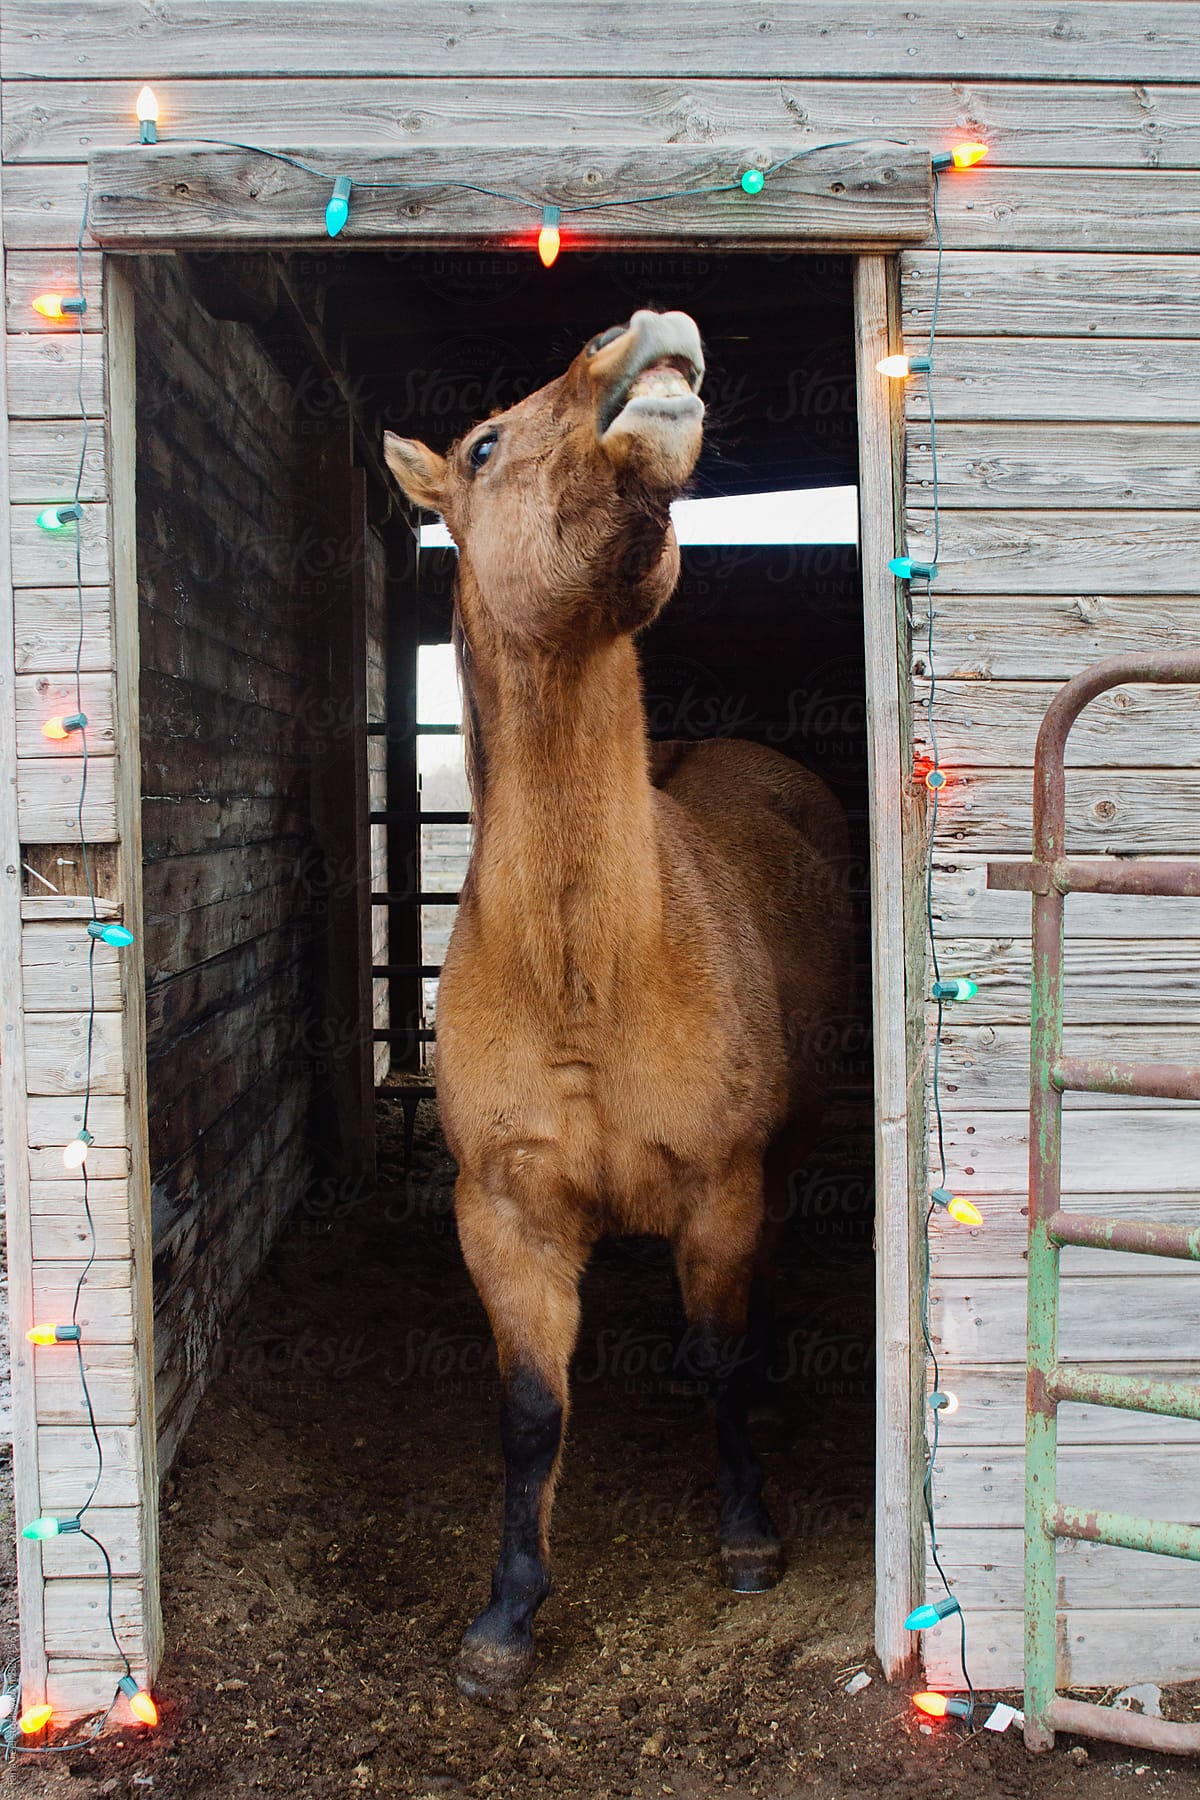 Horse Showing Teeth Standing In Barn Doorway Decorated With Christmas Lights By Tana Teel Christmas Horse Stocksy United